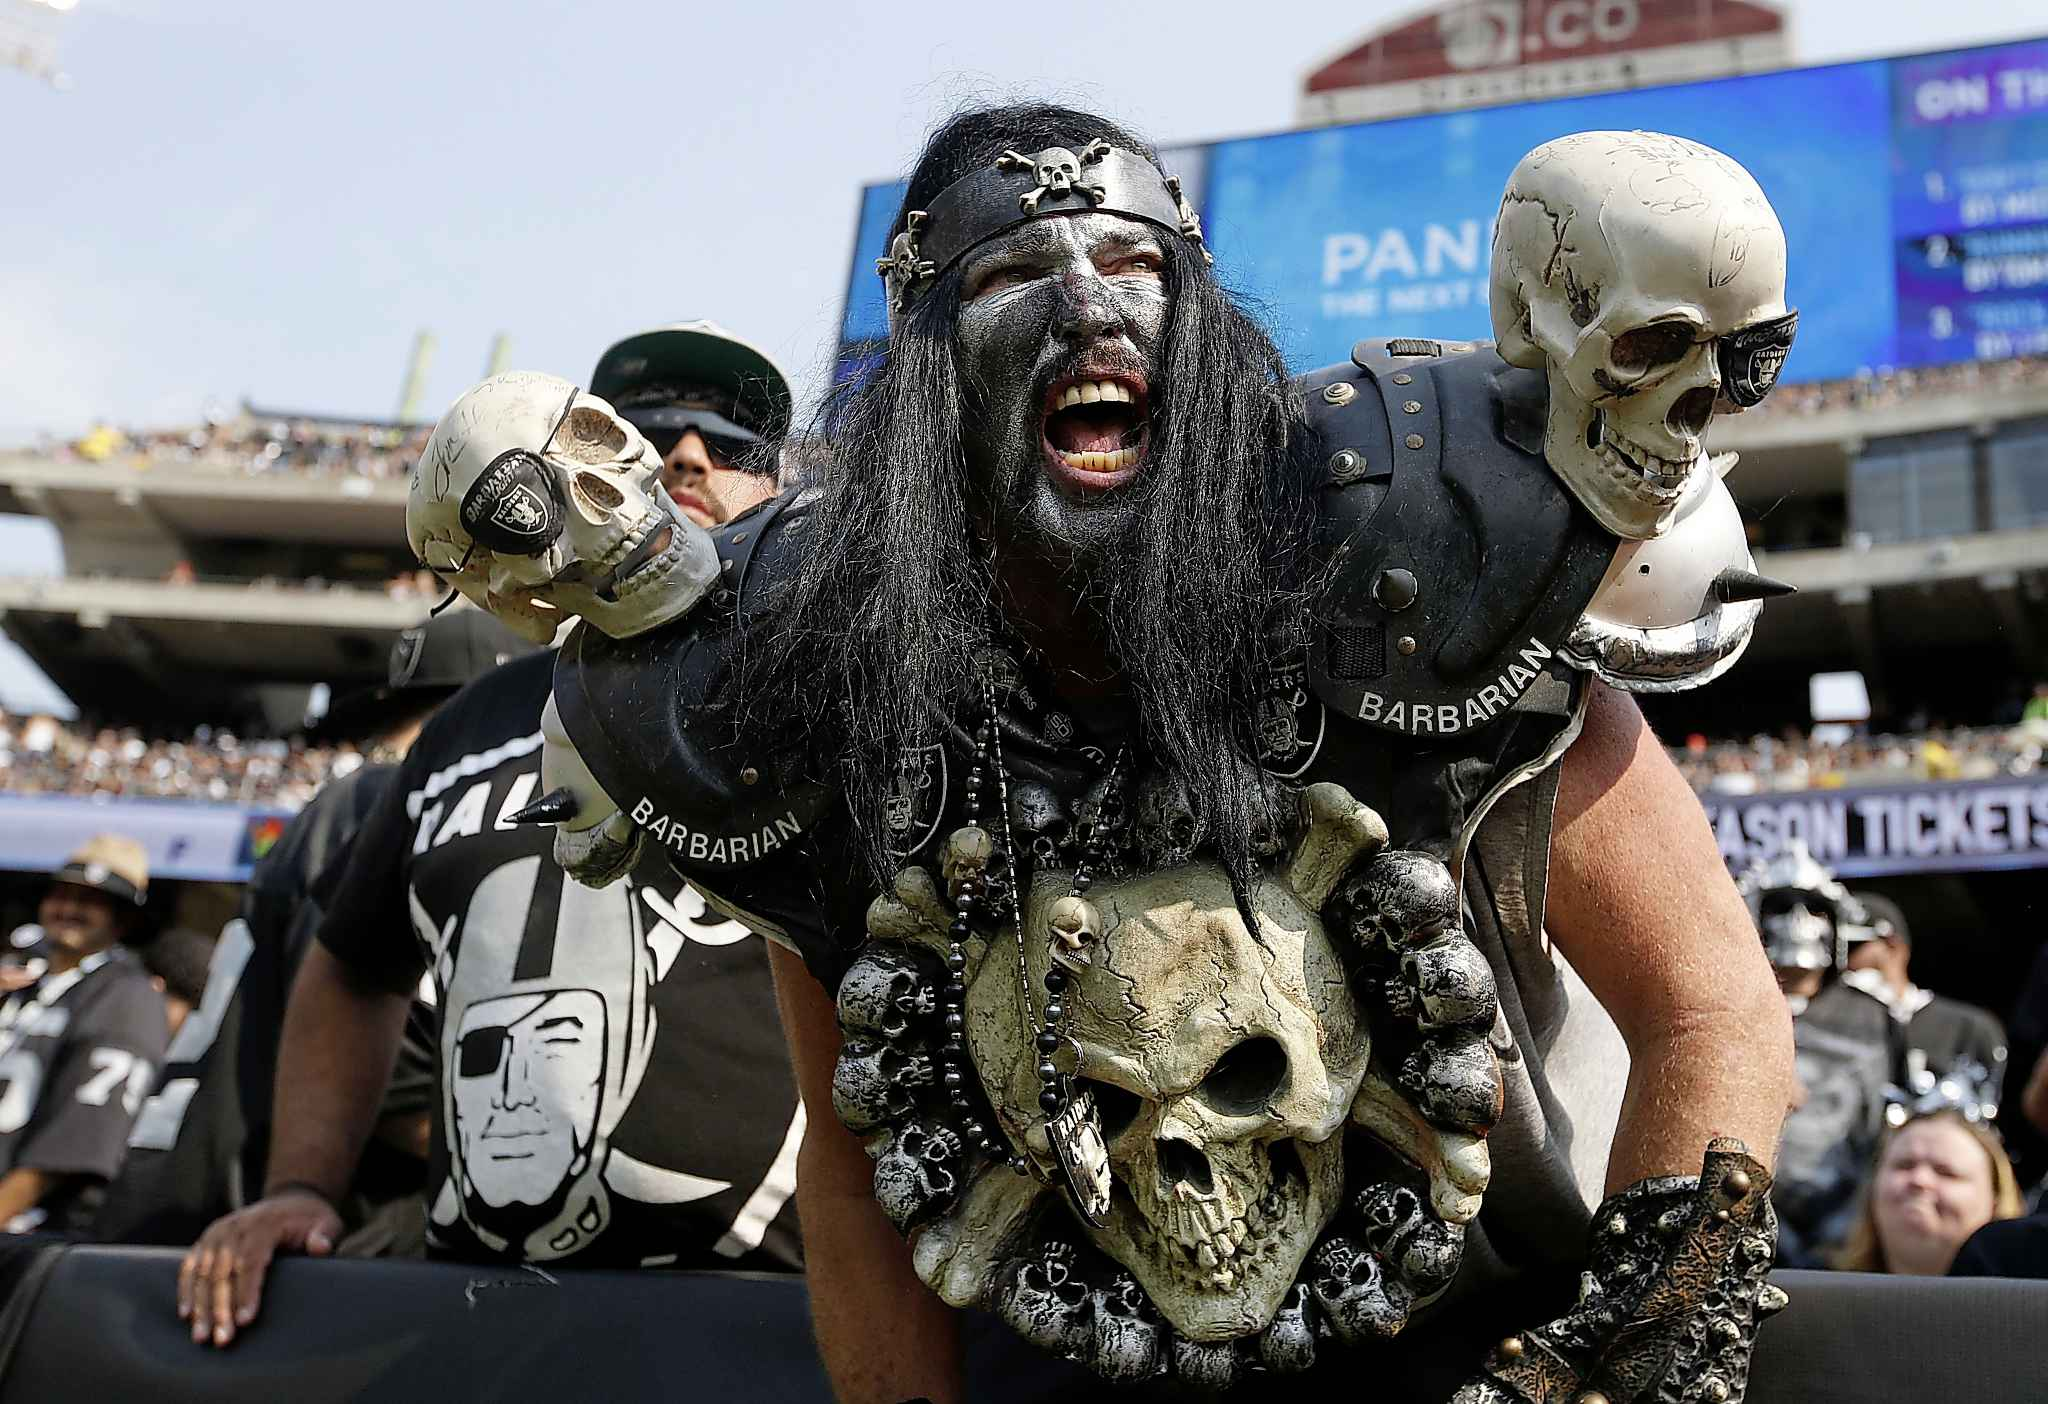 Oakland Raiders fans are some of the rowdiest fans in American sports.